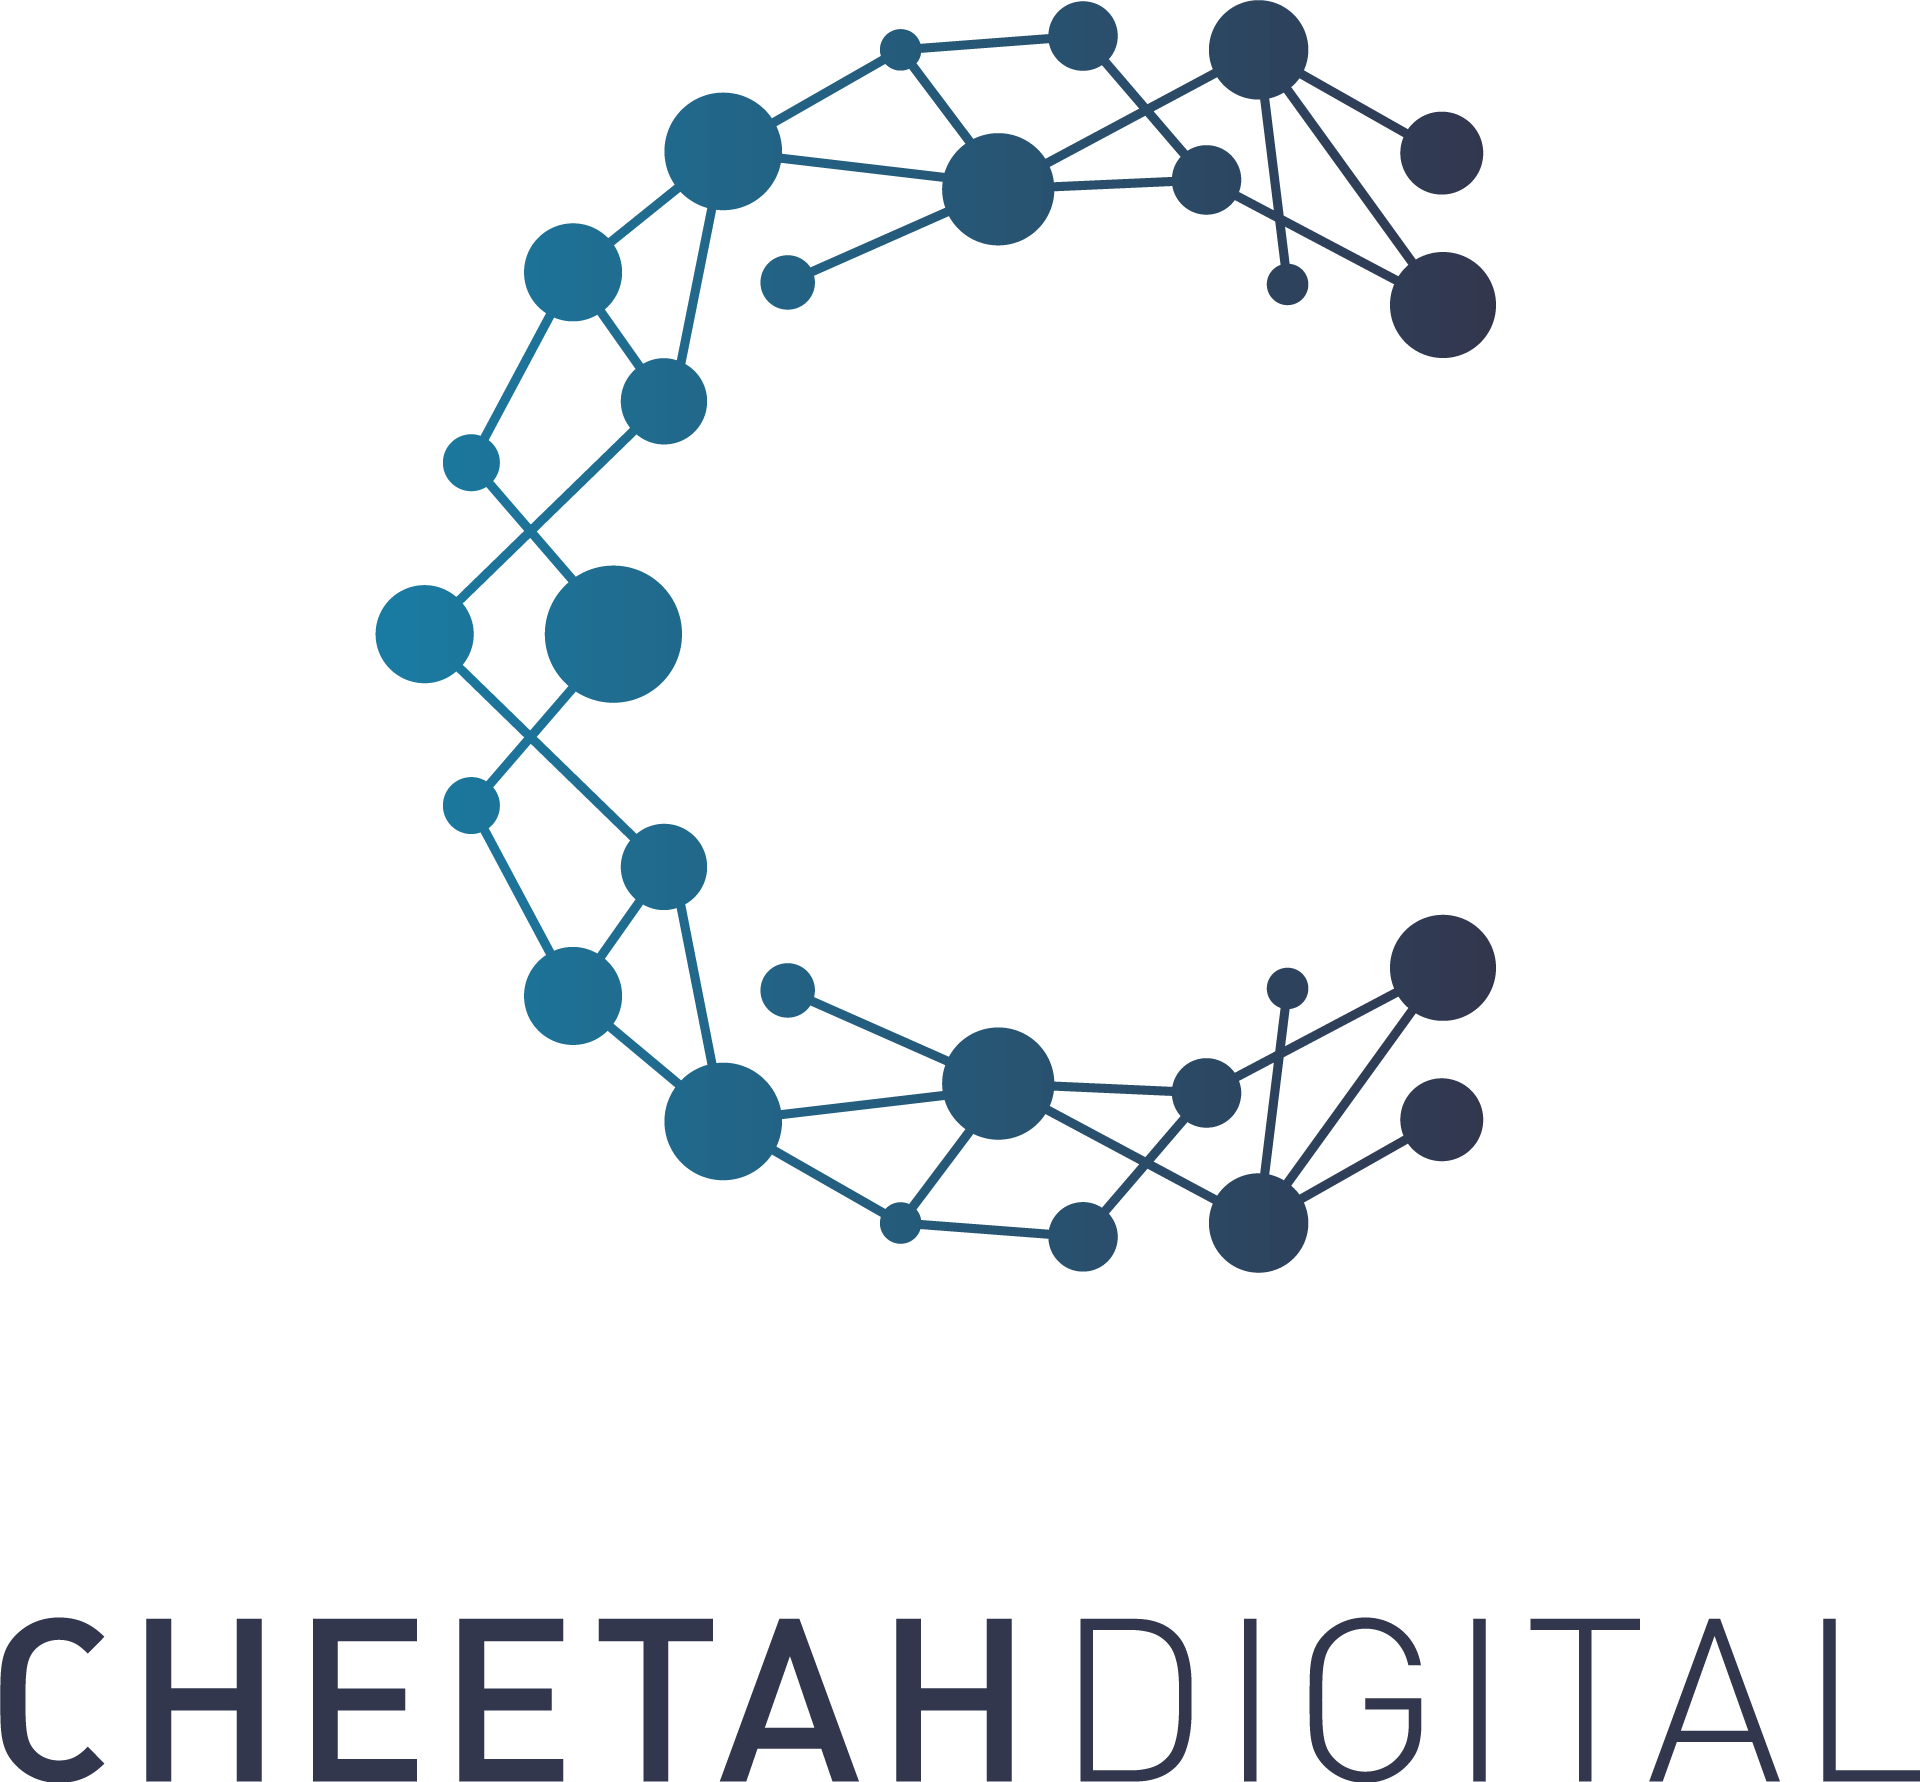 Cheetah Digital partnership with Experian Data Quality